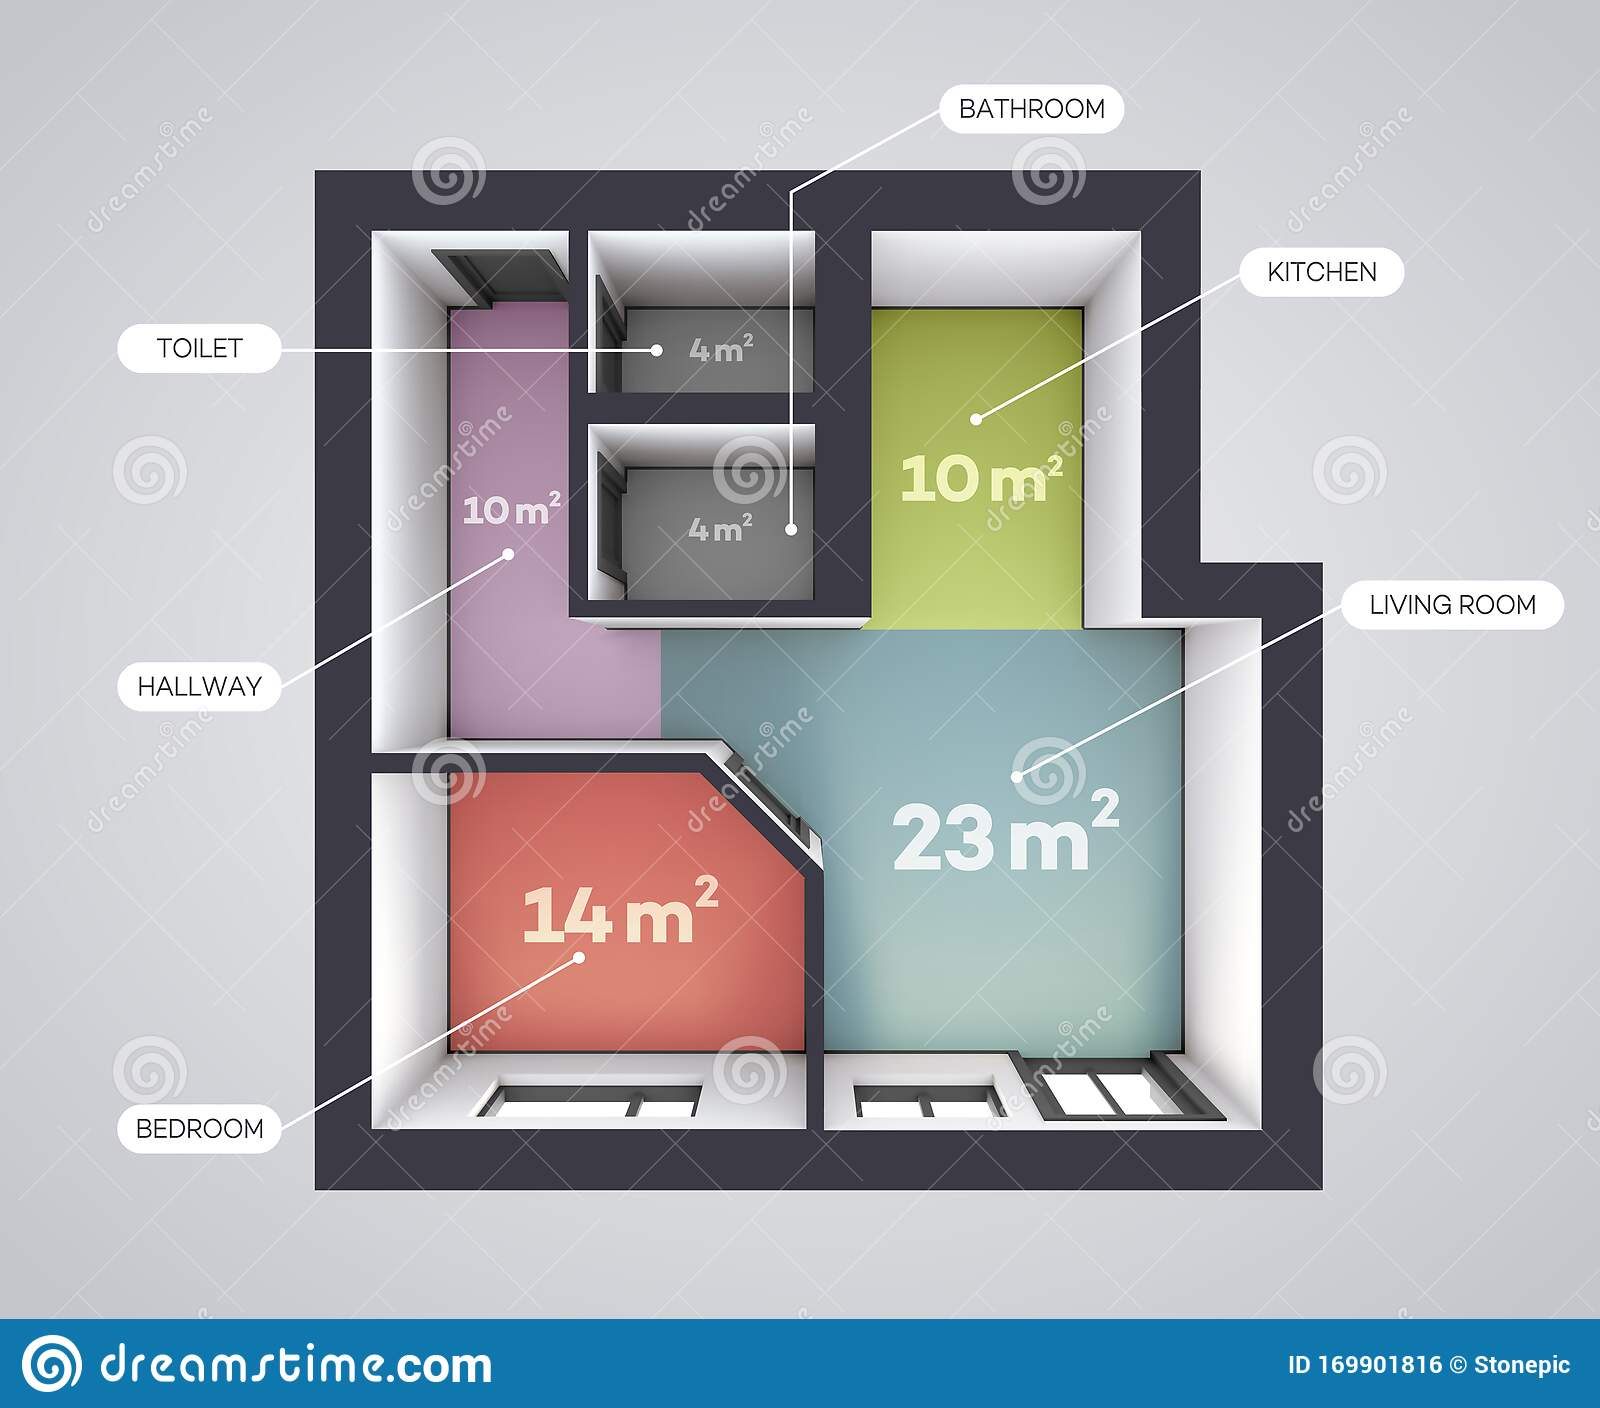 Architectural Color Floor Plan One Bedroom Studio Apartment Top View Rendering Style Stock Vector Illustration Of Modern Architectural 169901816